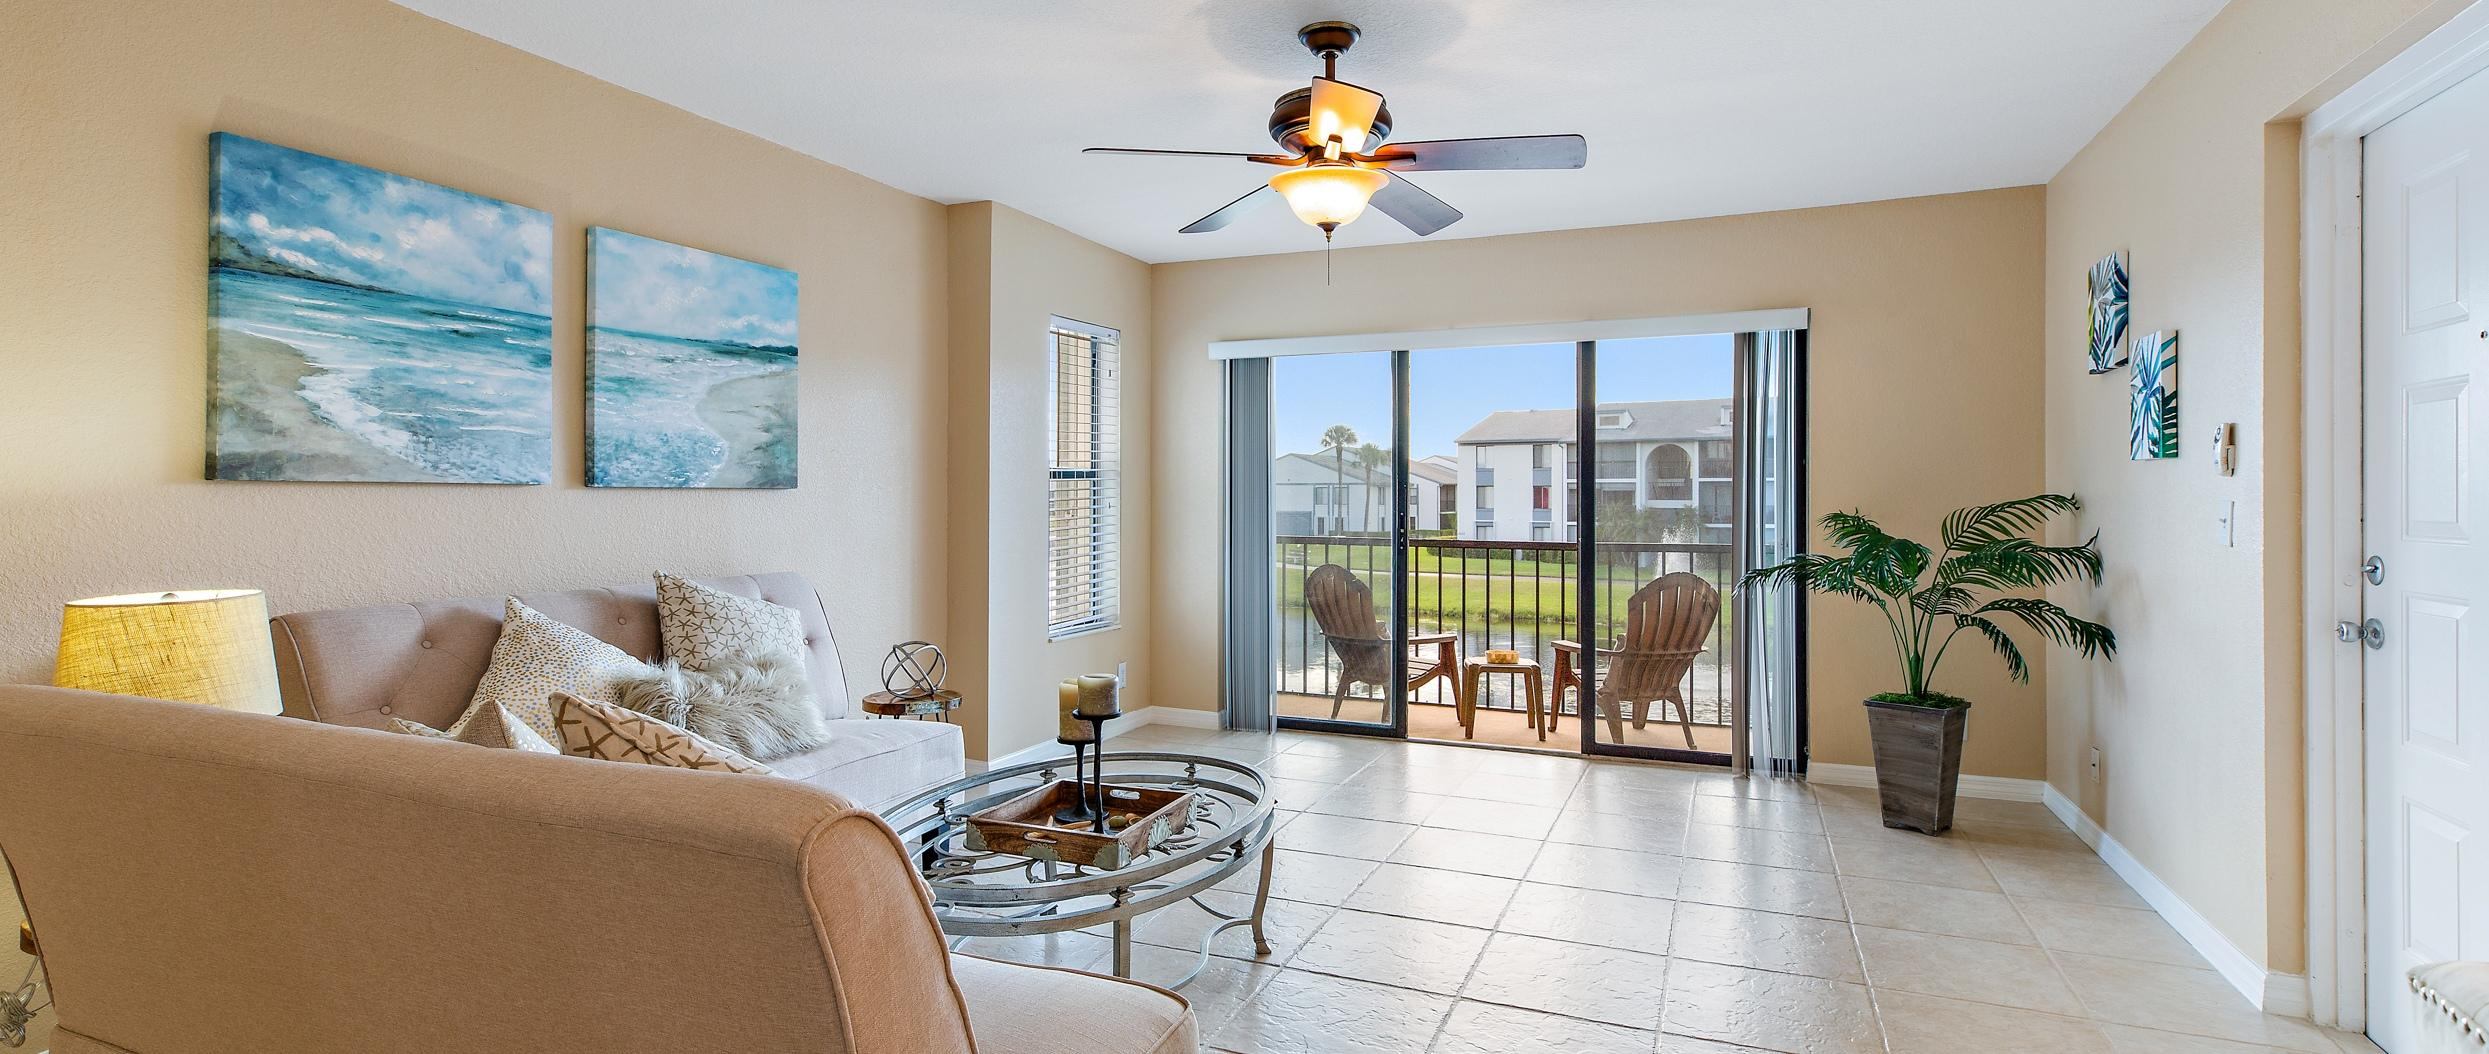 Home for sale in Palm Club Village East West Palm Beach Florida